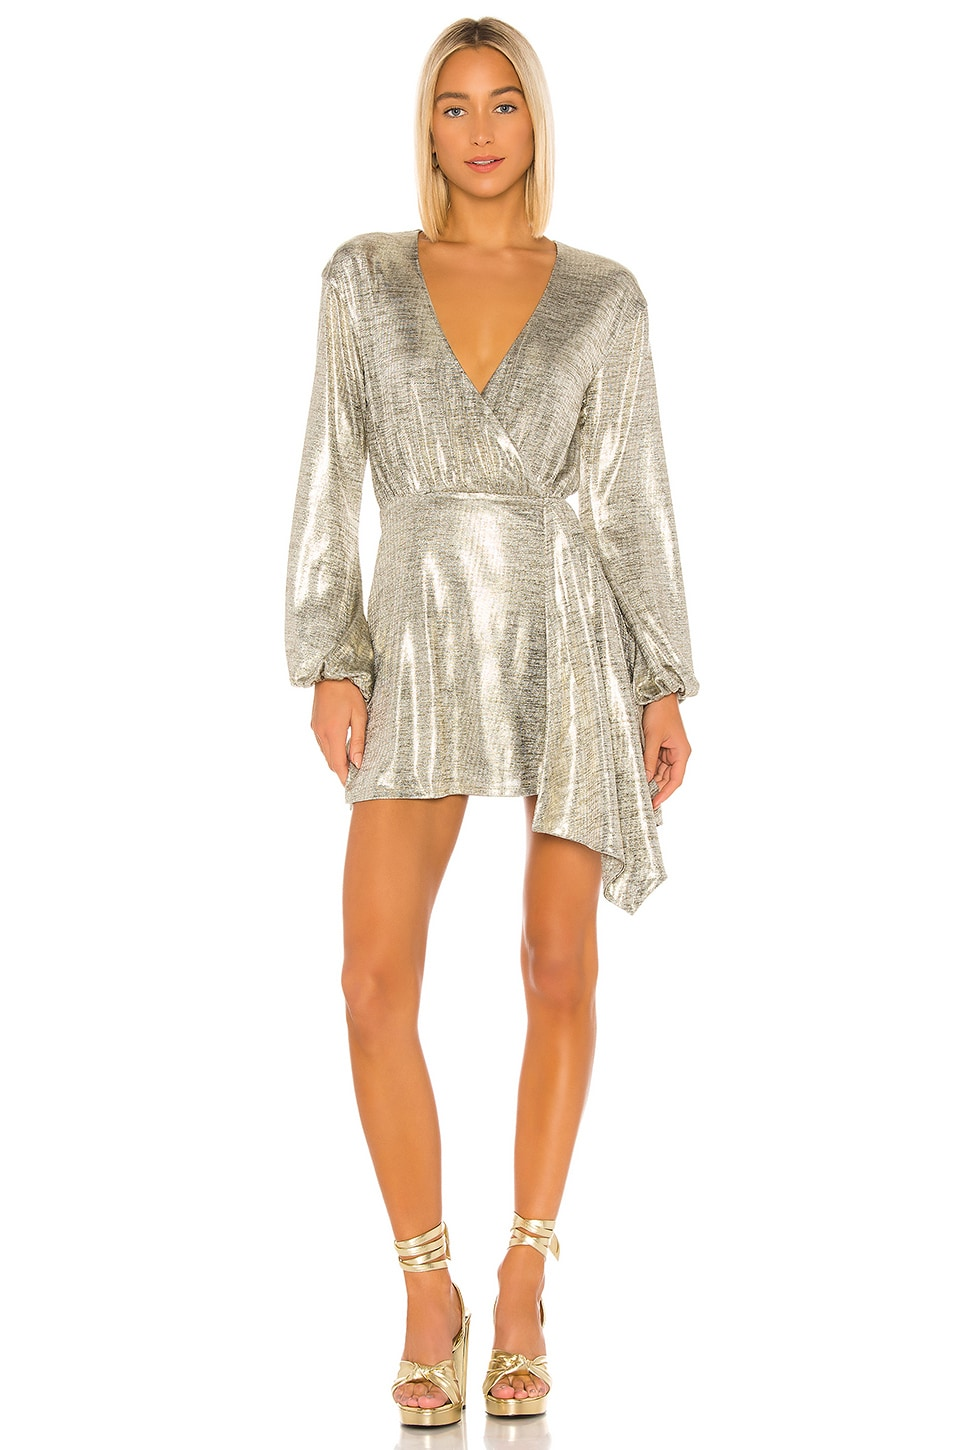 House of Harlow 1960 x REVOLVE Aniela Mini Dress in Pewter